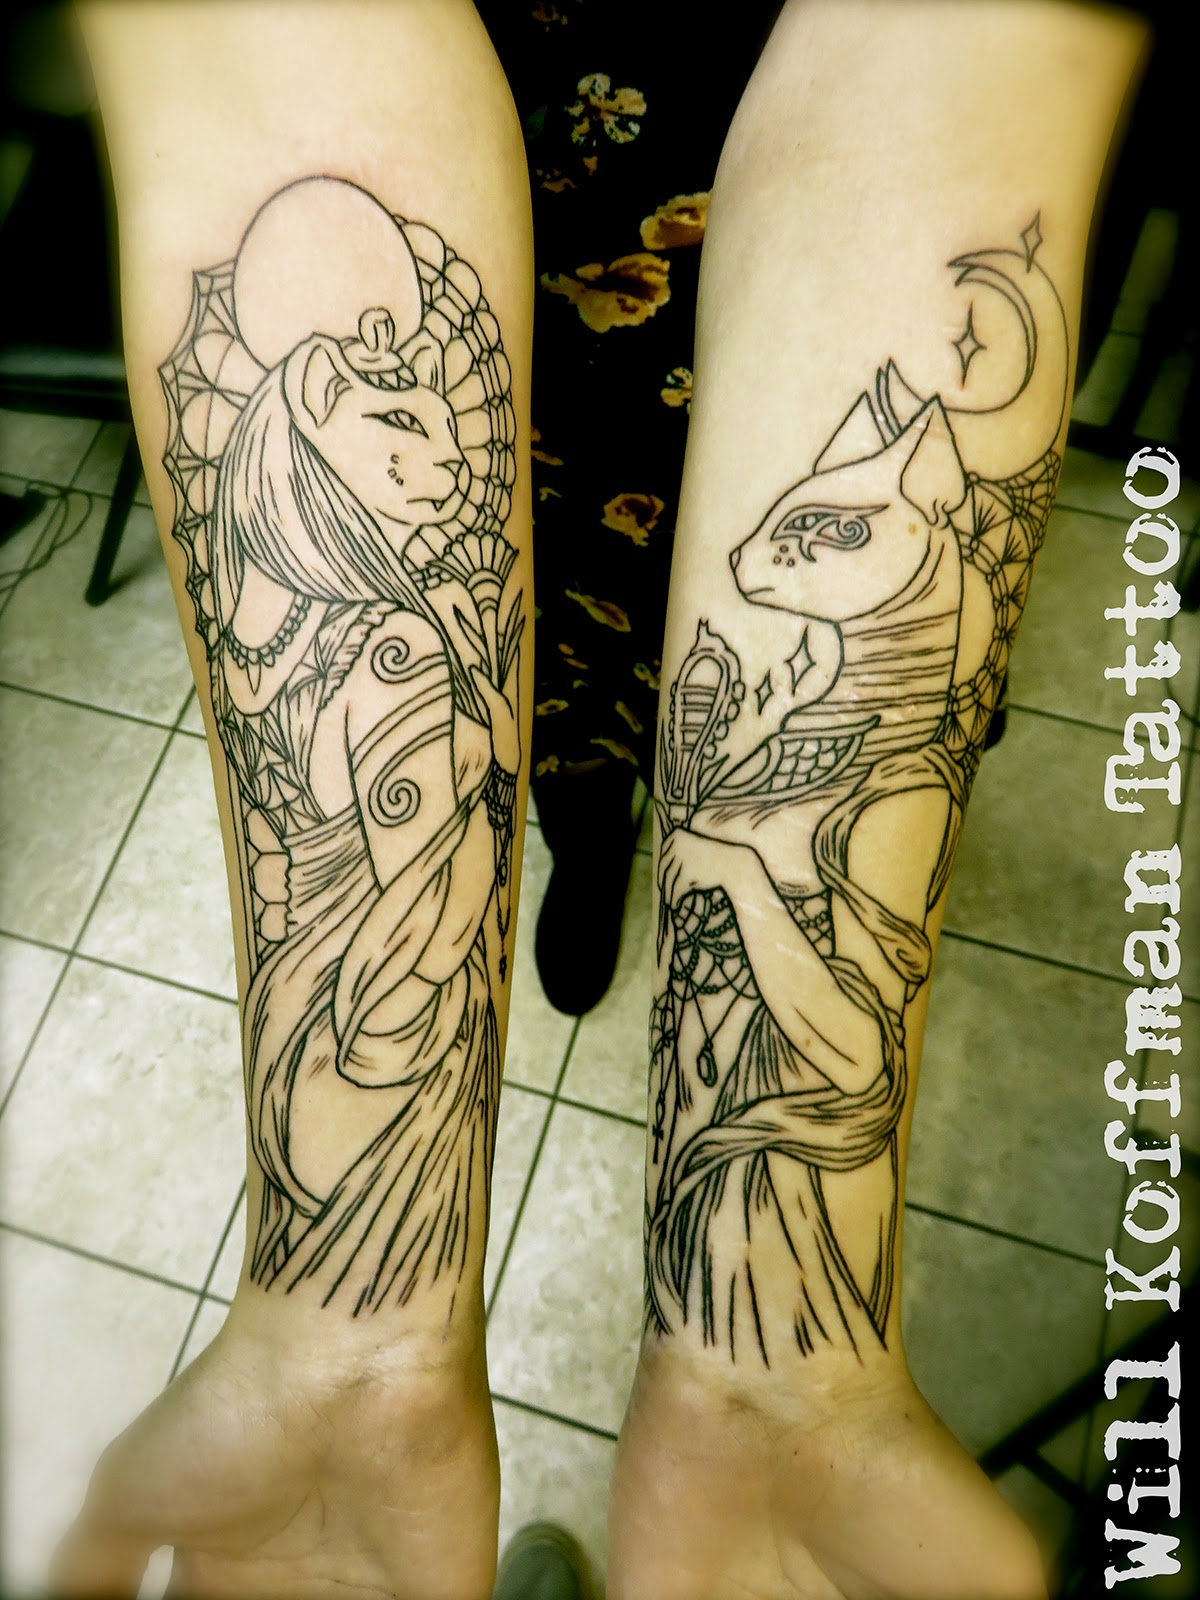 Sekhmet and Bastet Eagypt Tattoos on Arm